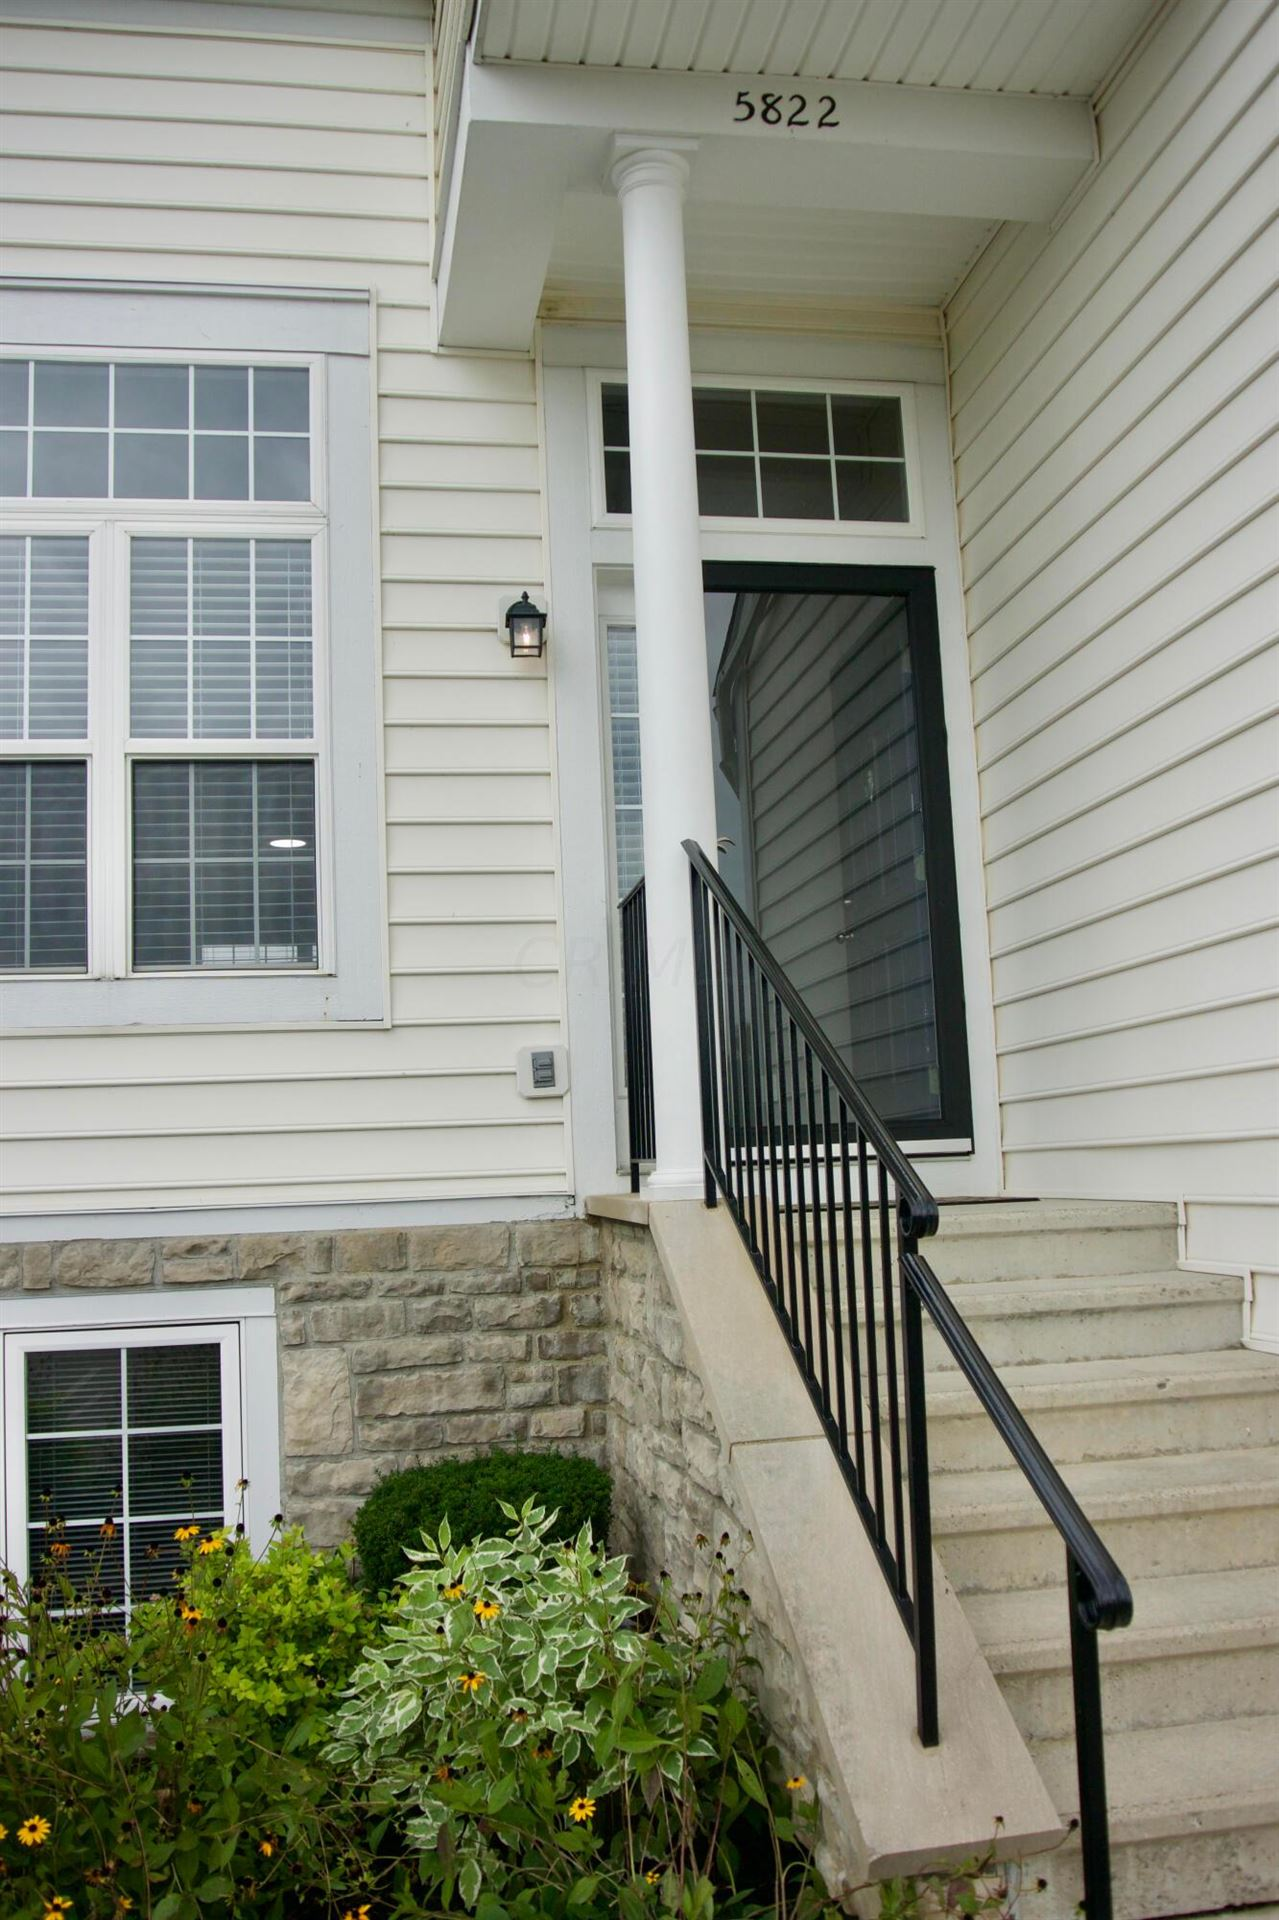 Photo of 5822 Aristides Way #10-582, New Albany, OH 43054 (MLS # 221039502)